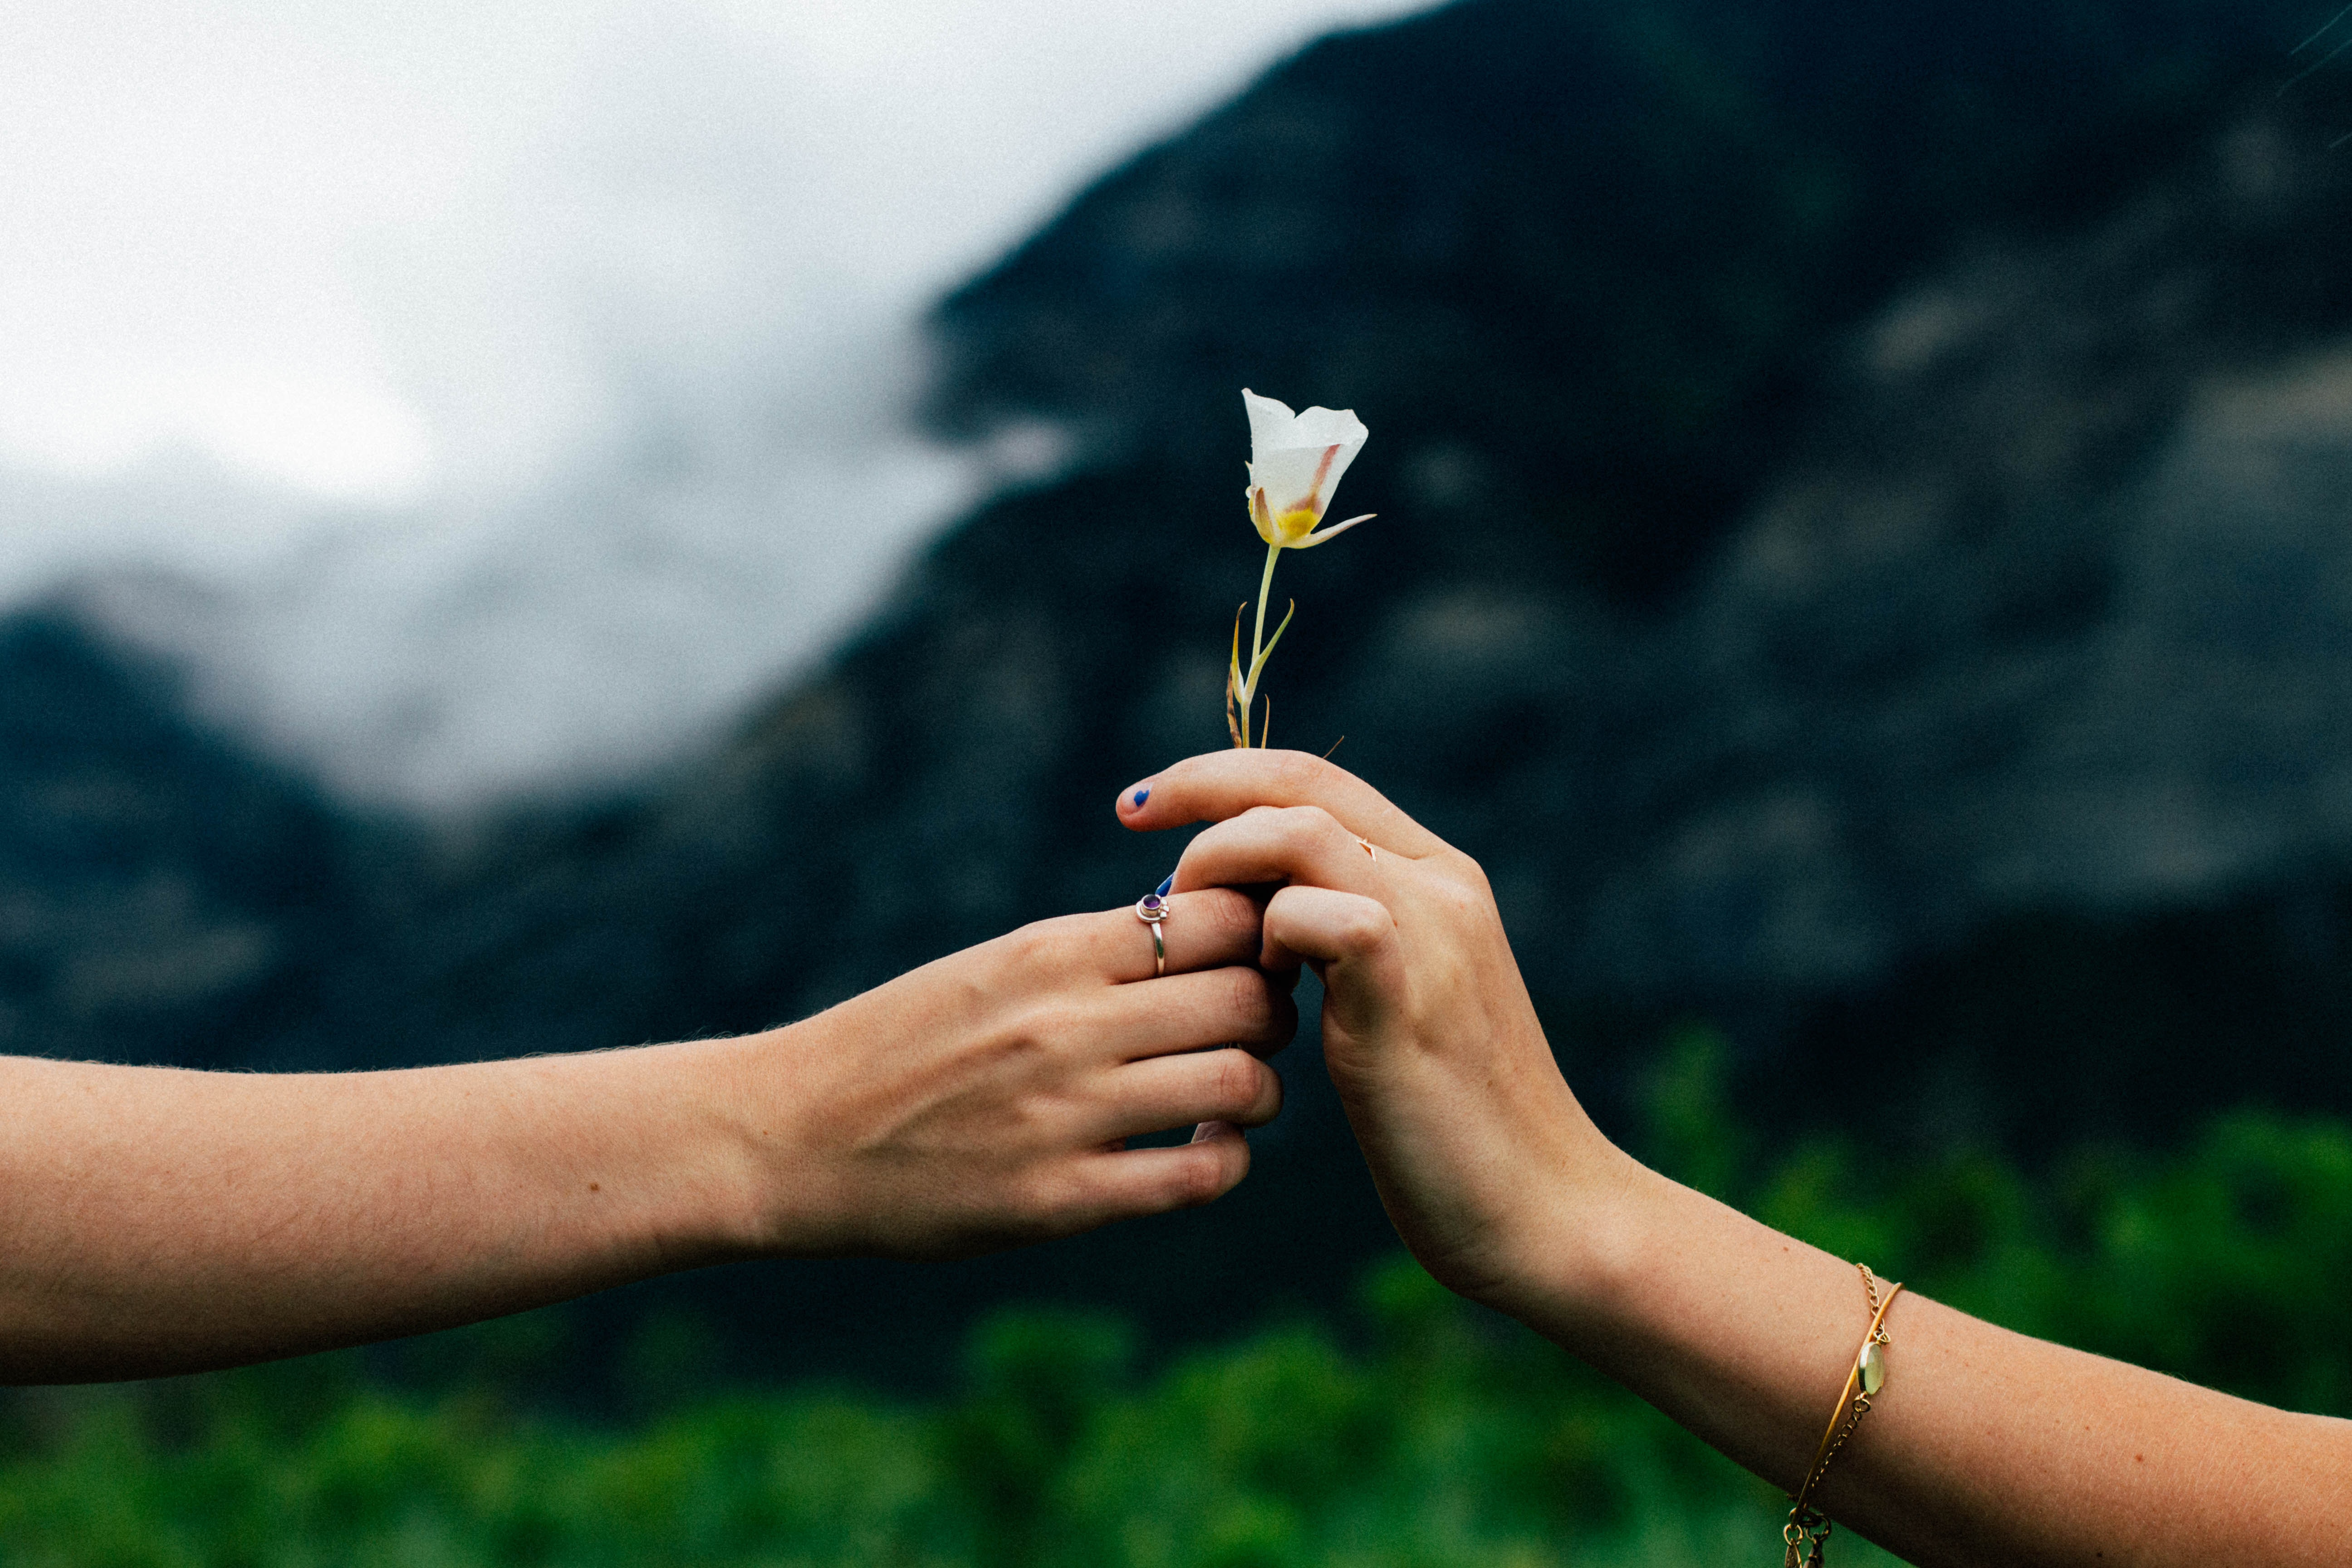 One hand giving a flower to another